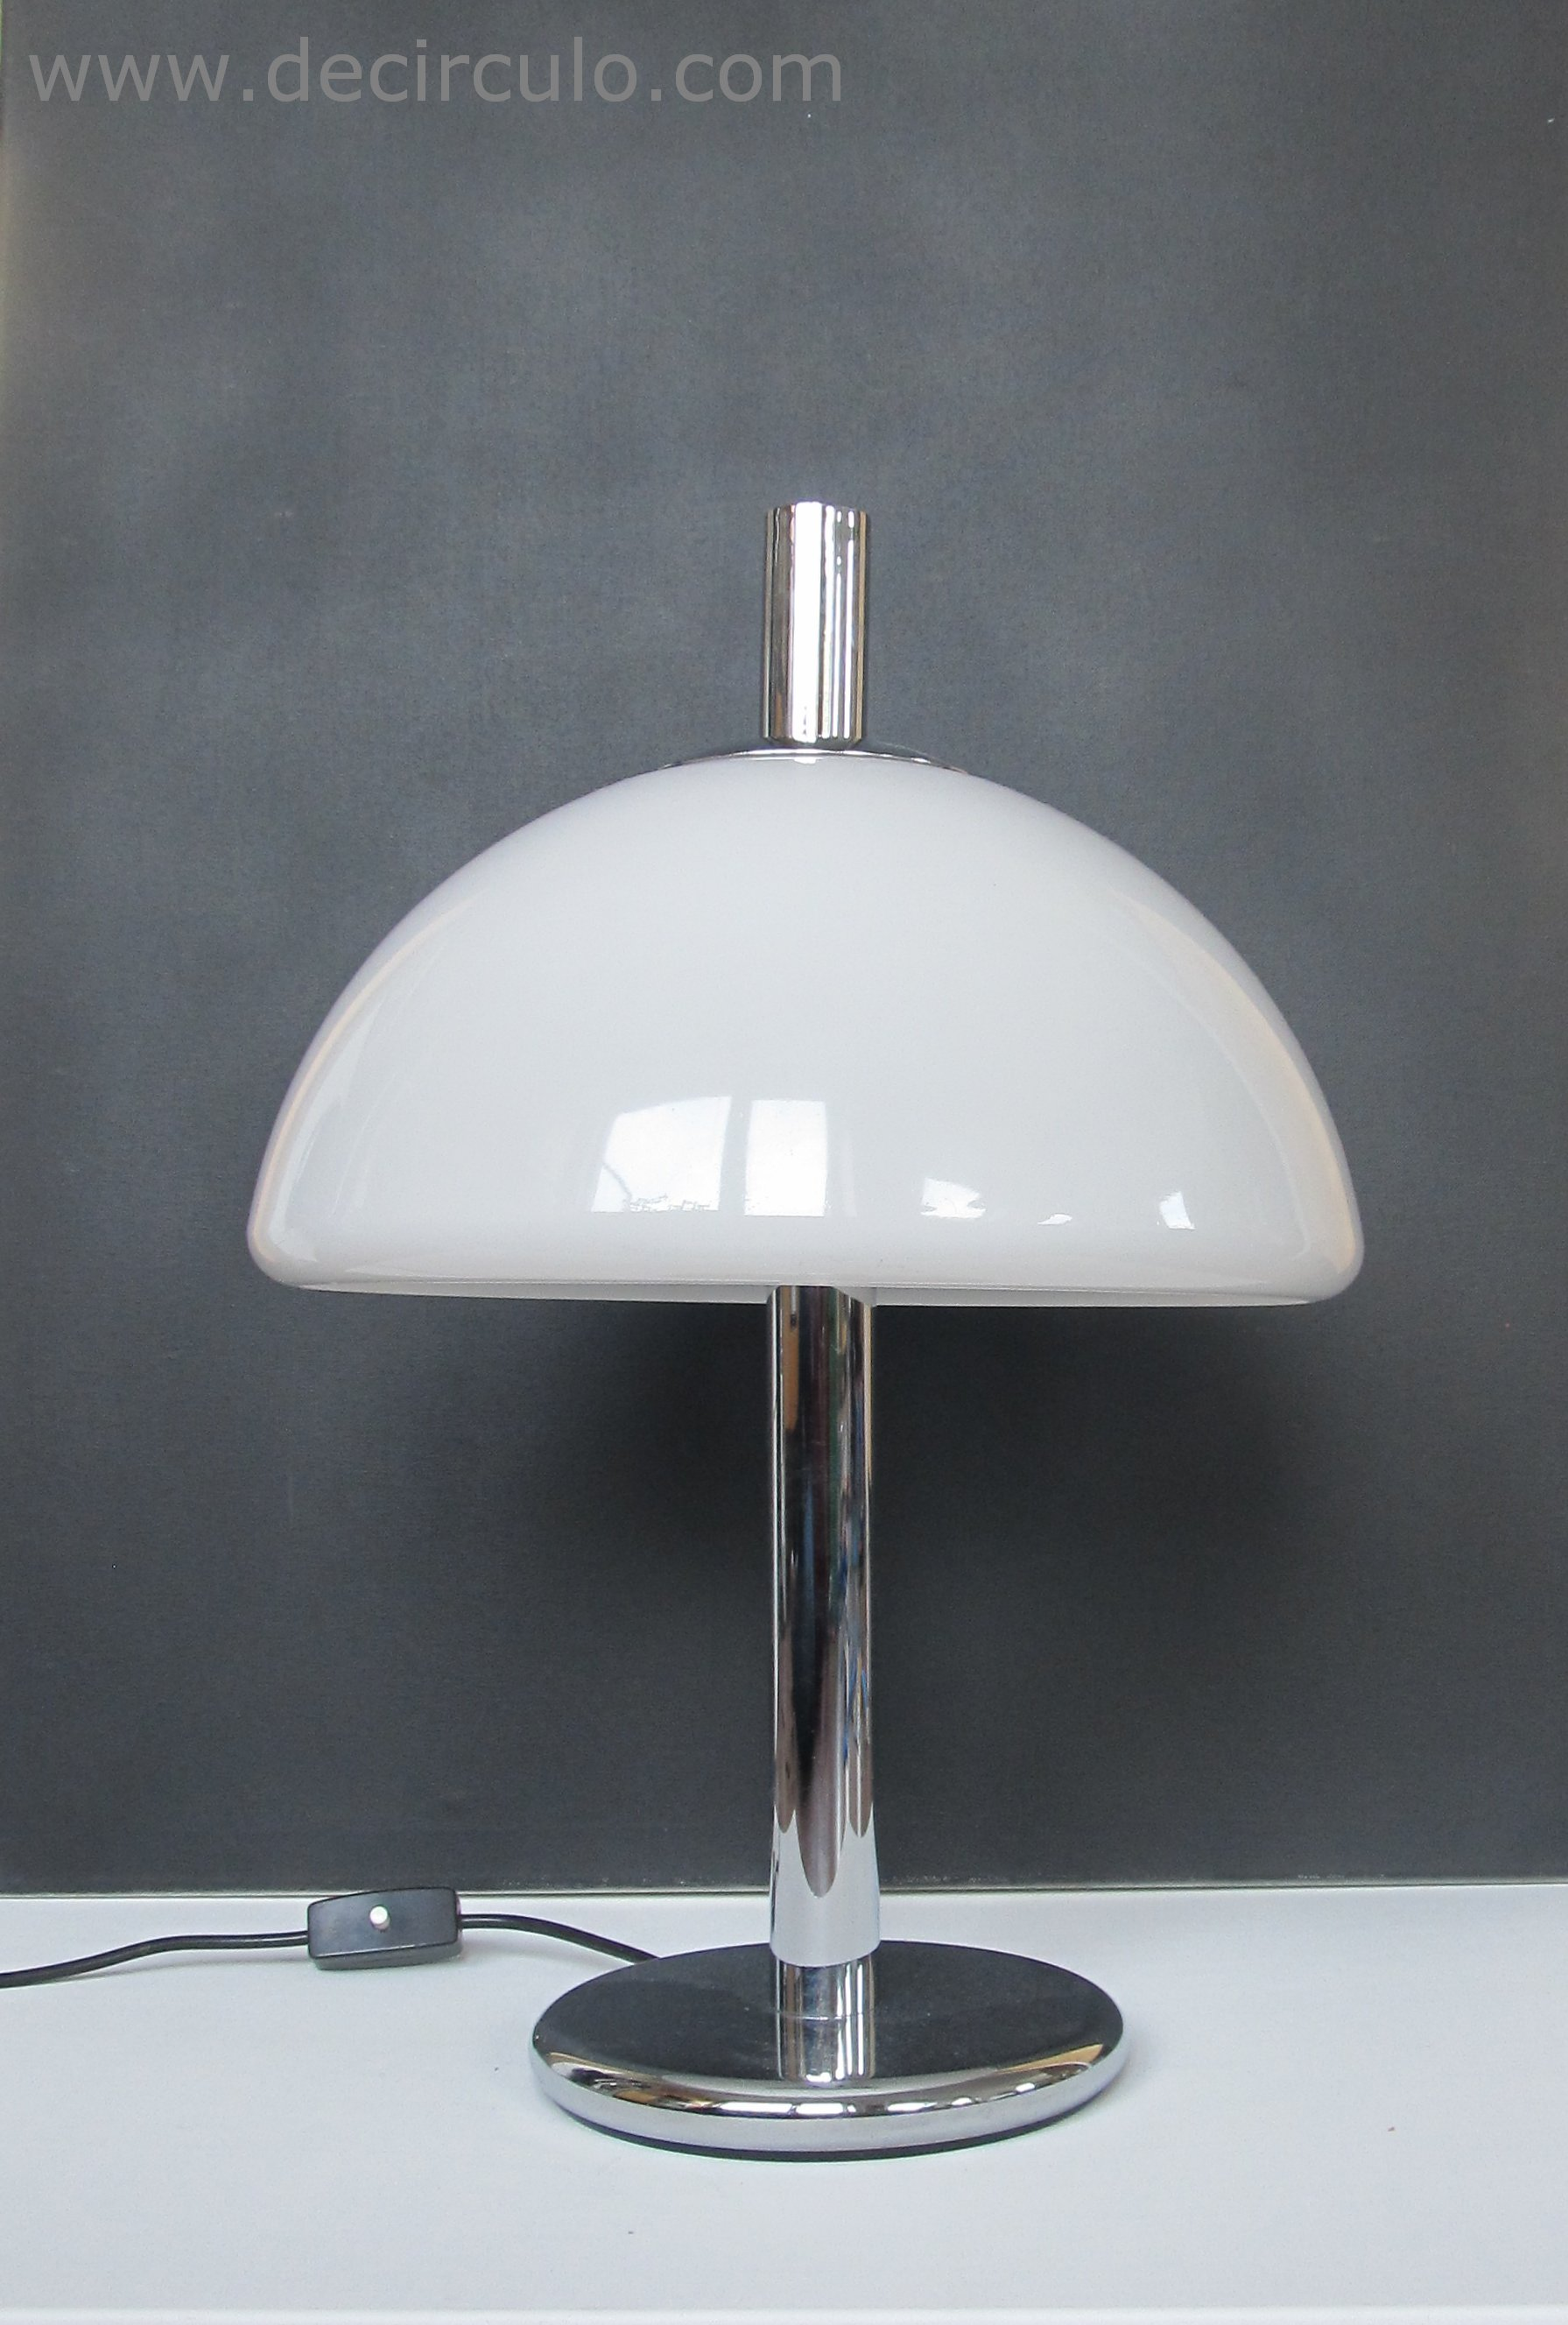 Hillebrand Desk Lamp White